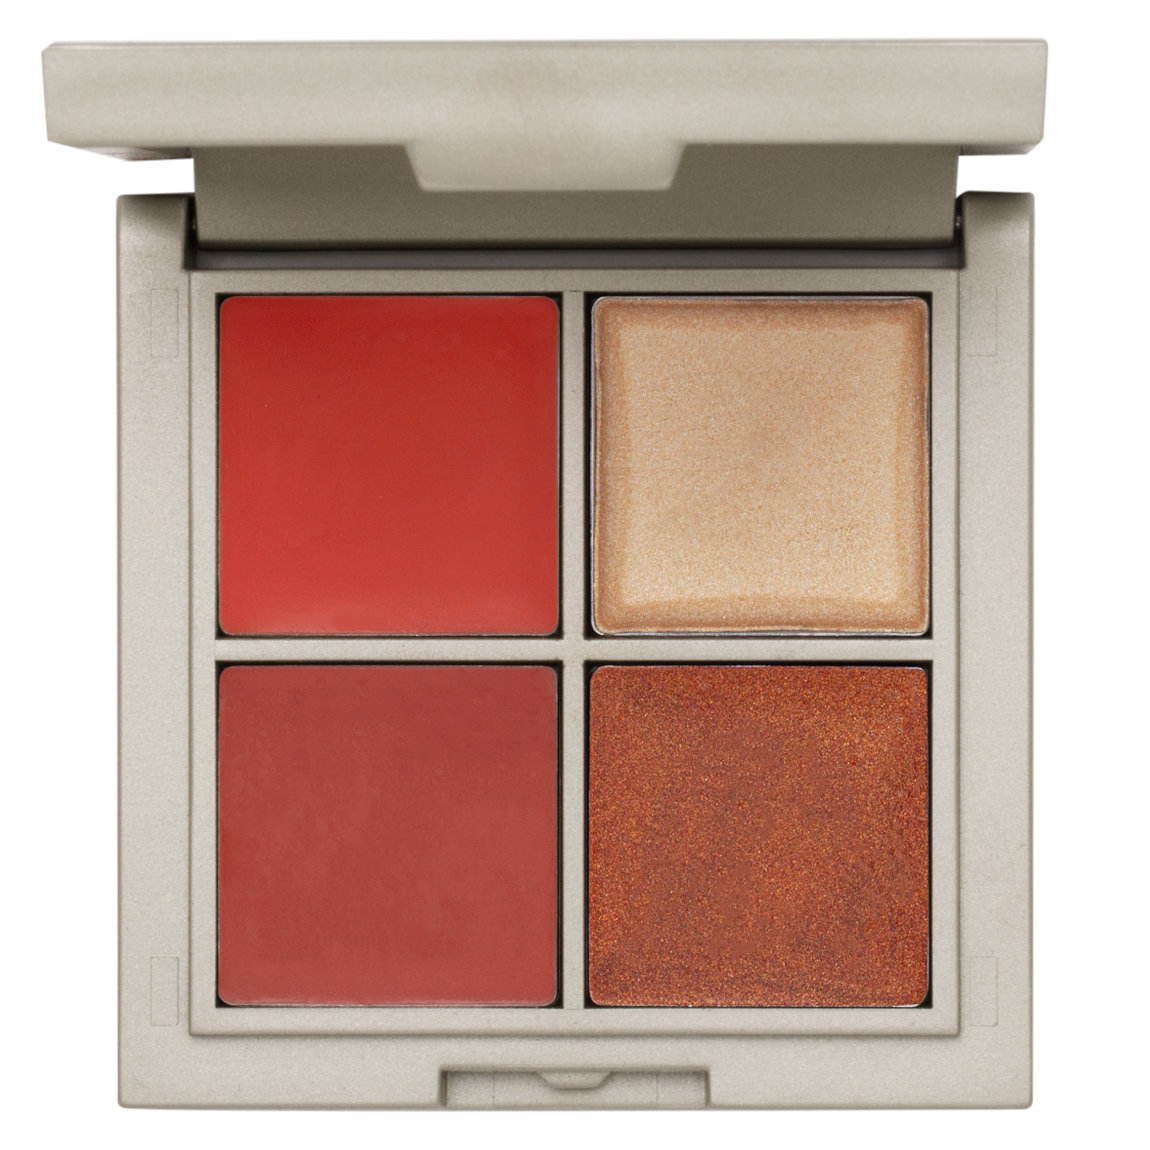 ILIA Summer Essential Face Palette product swatch.